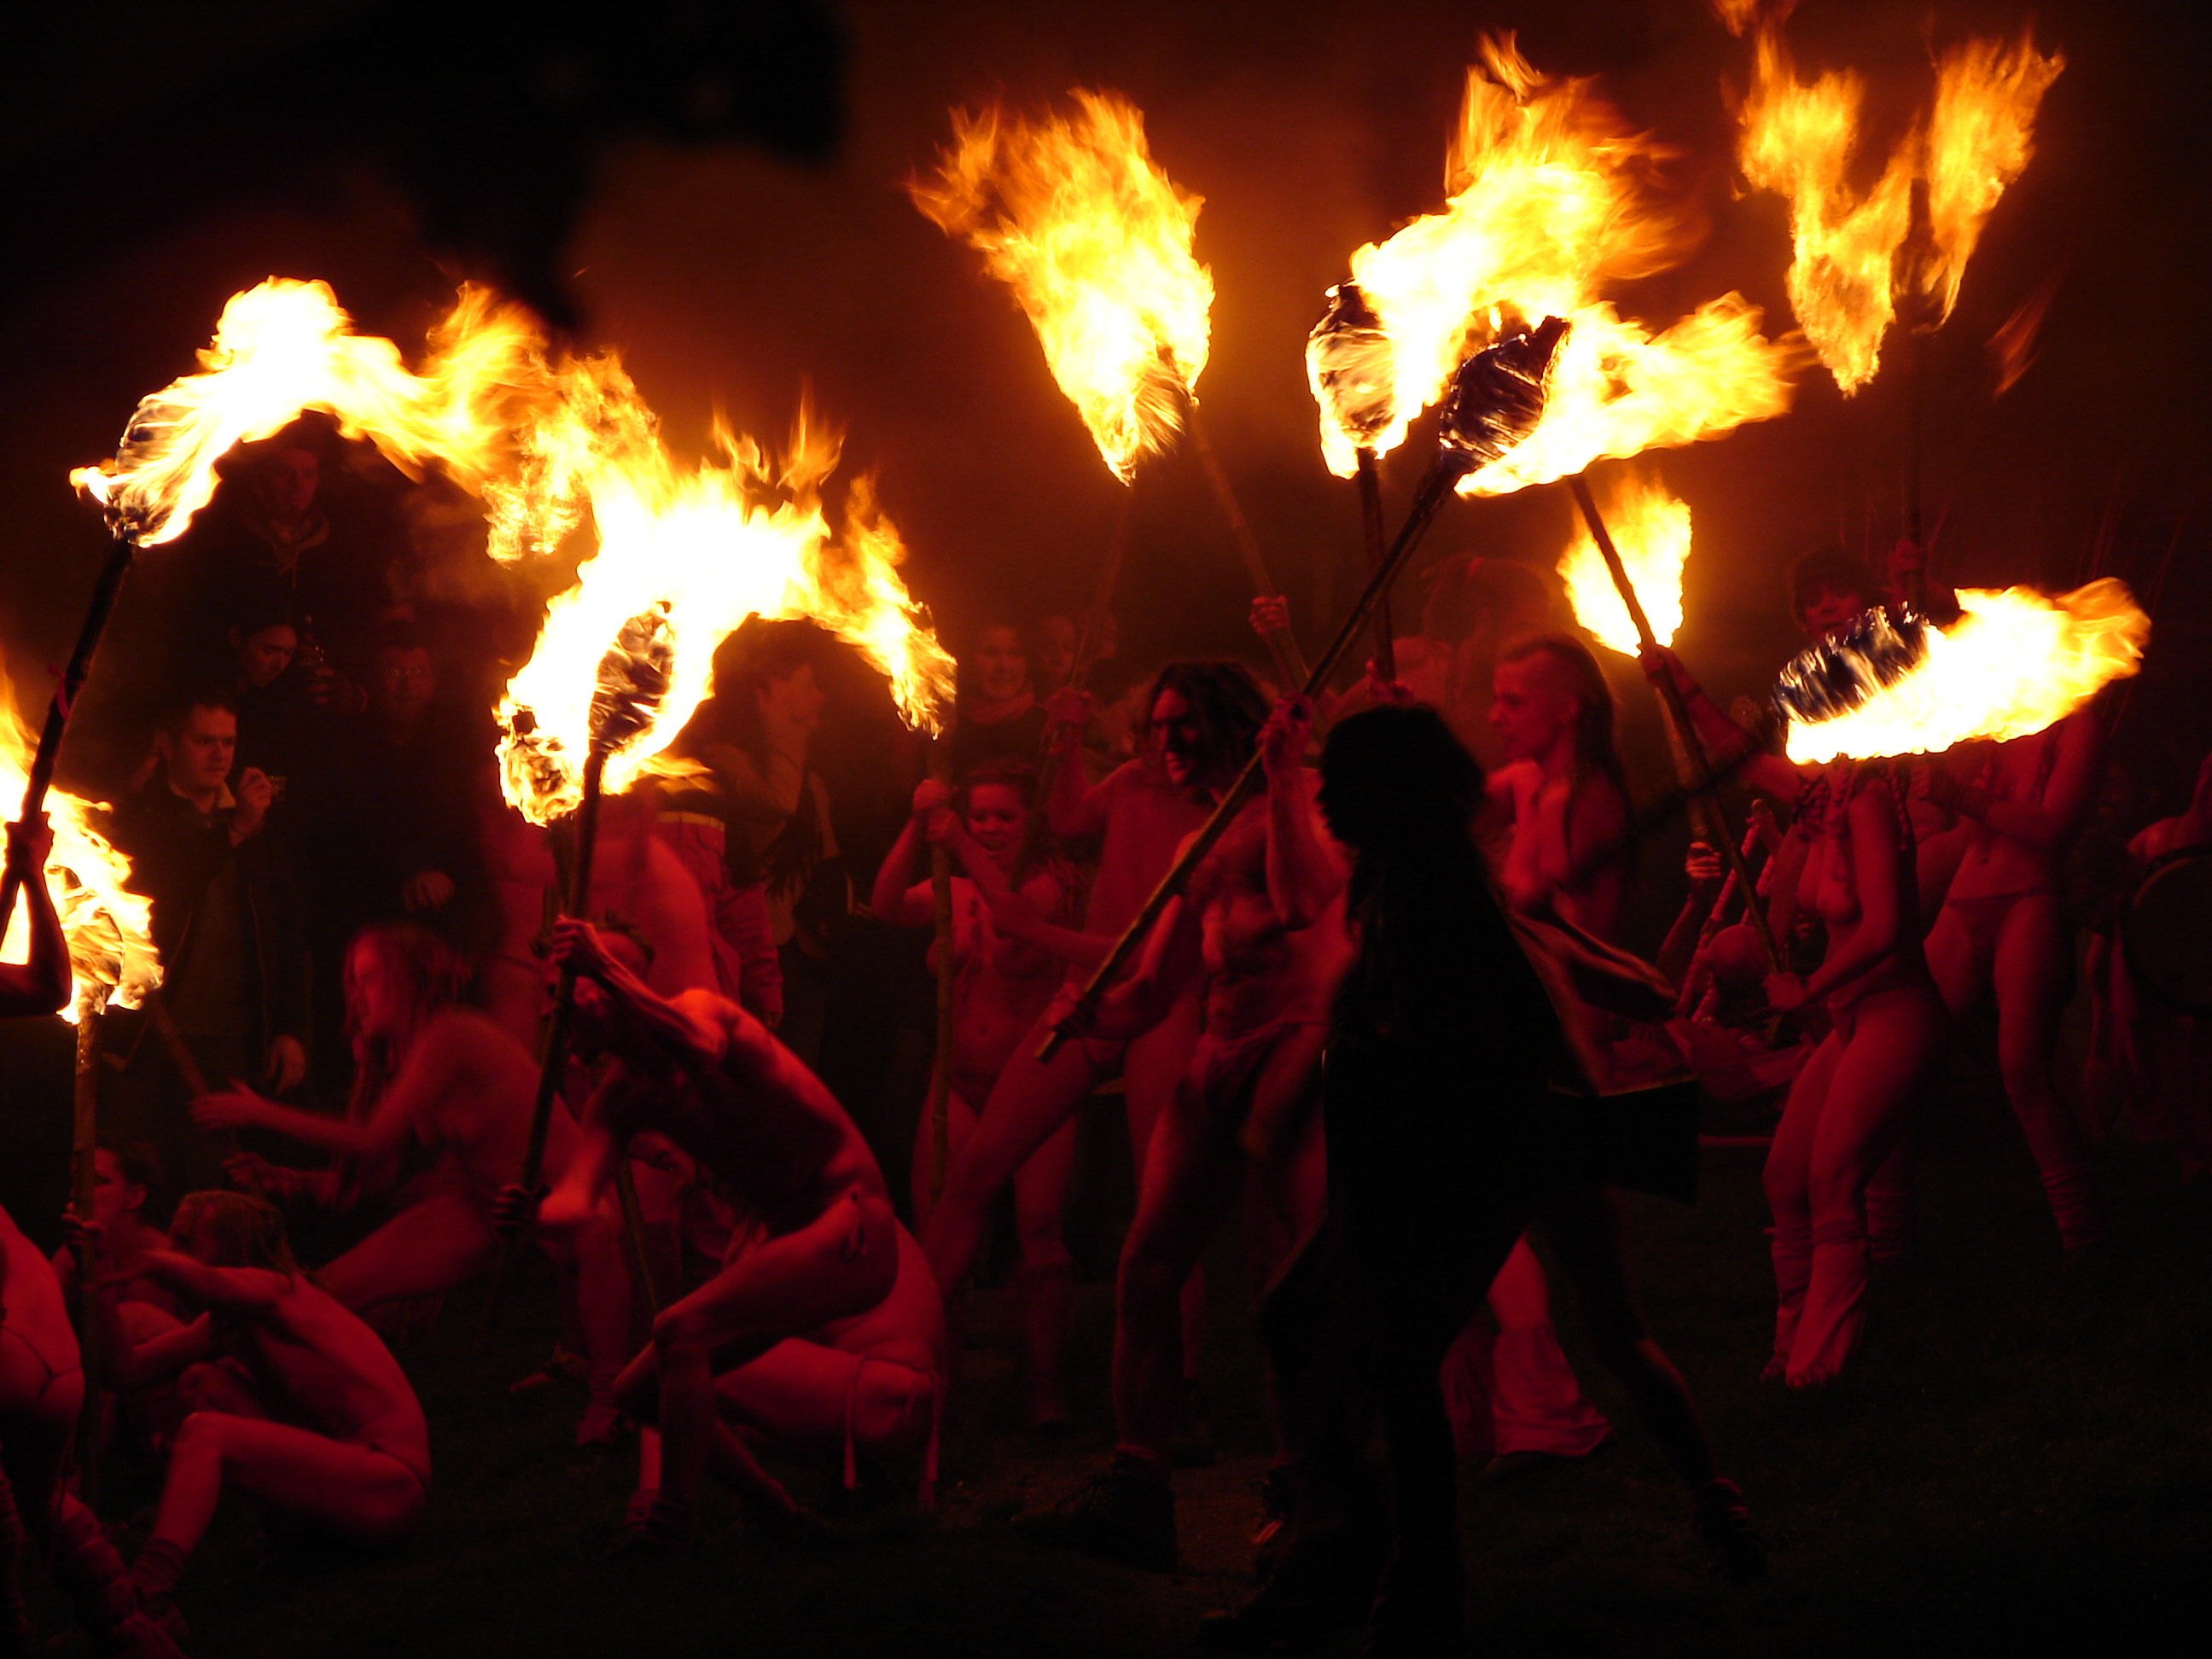 Beltane Fire Festival Edinburgh, Scotland - Spring events